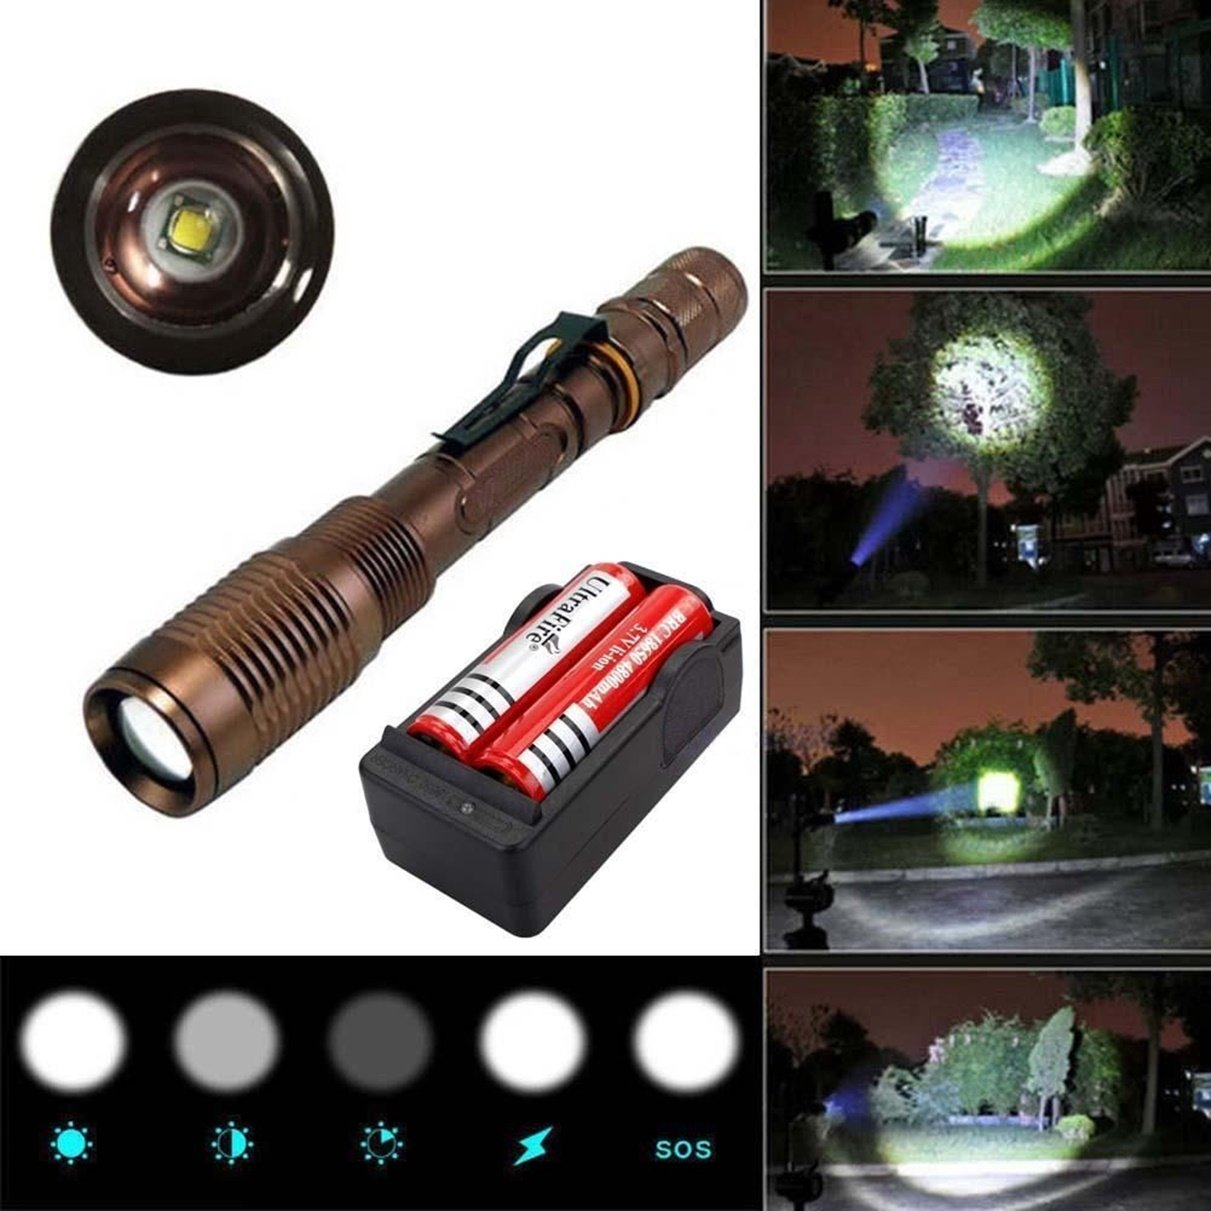 1Pc Reliable Unique LED Flashlight 3000 Lumen 5Mode LEDs Flashlights Torch Bike Night Light Coast Bright Camping Military Police Tactical Light Lamp Color Bronze w/ 18650 Rechargeable Battery Charger